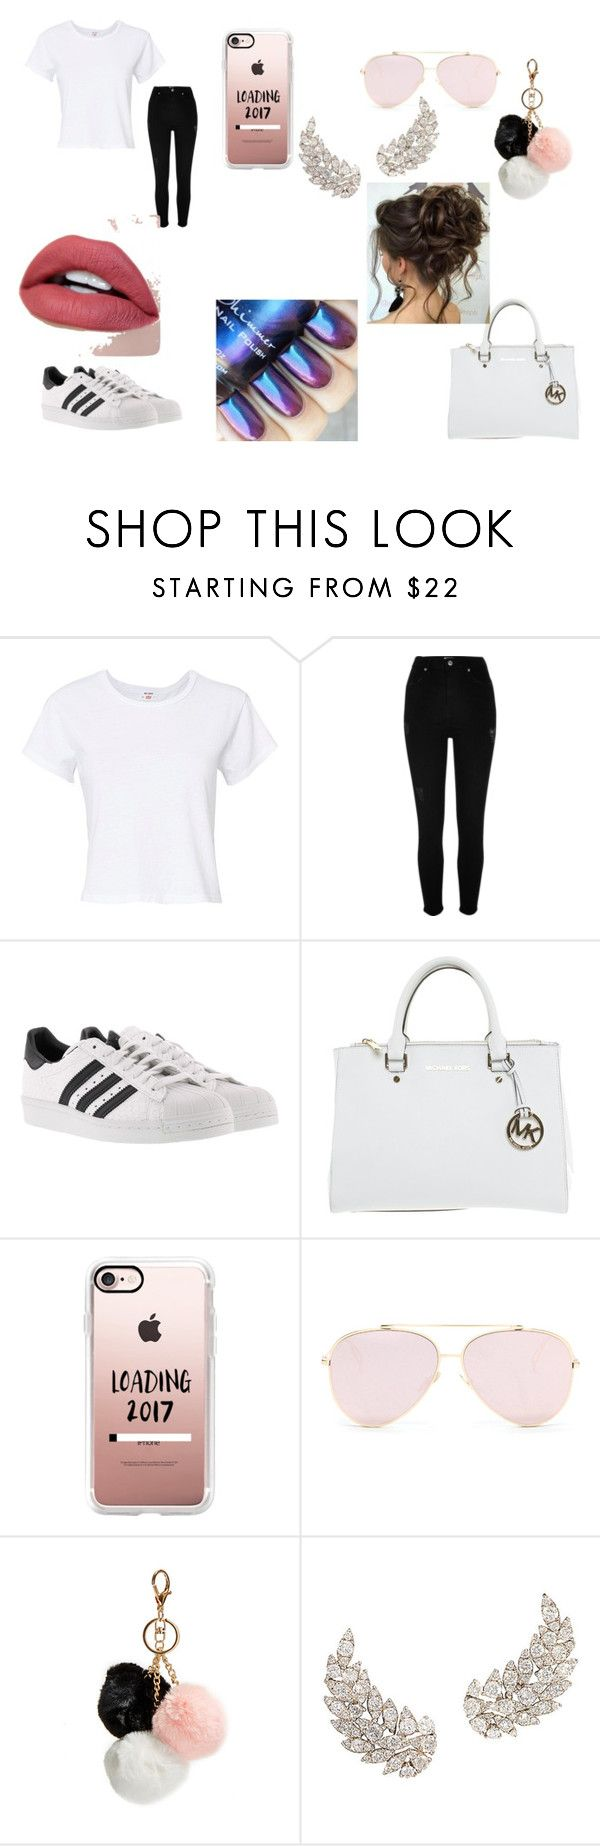 """""""its twin day at school so my twin and i is wearing white and black"""" by leinyjahj ❤ liked on Polyvore featuring interior, interiors, interior design, home, home decor, interior decorating, RE/DONE, River Island, adidas and Michael Kors"""